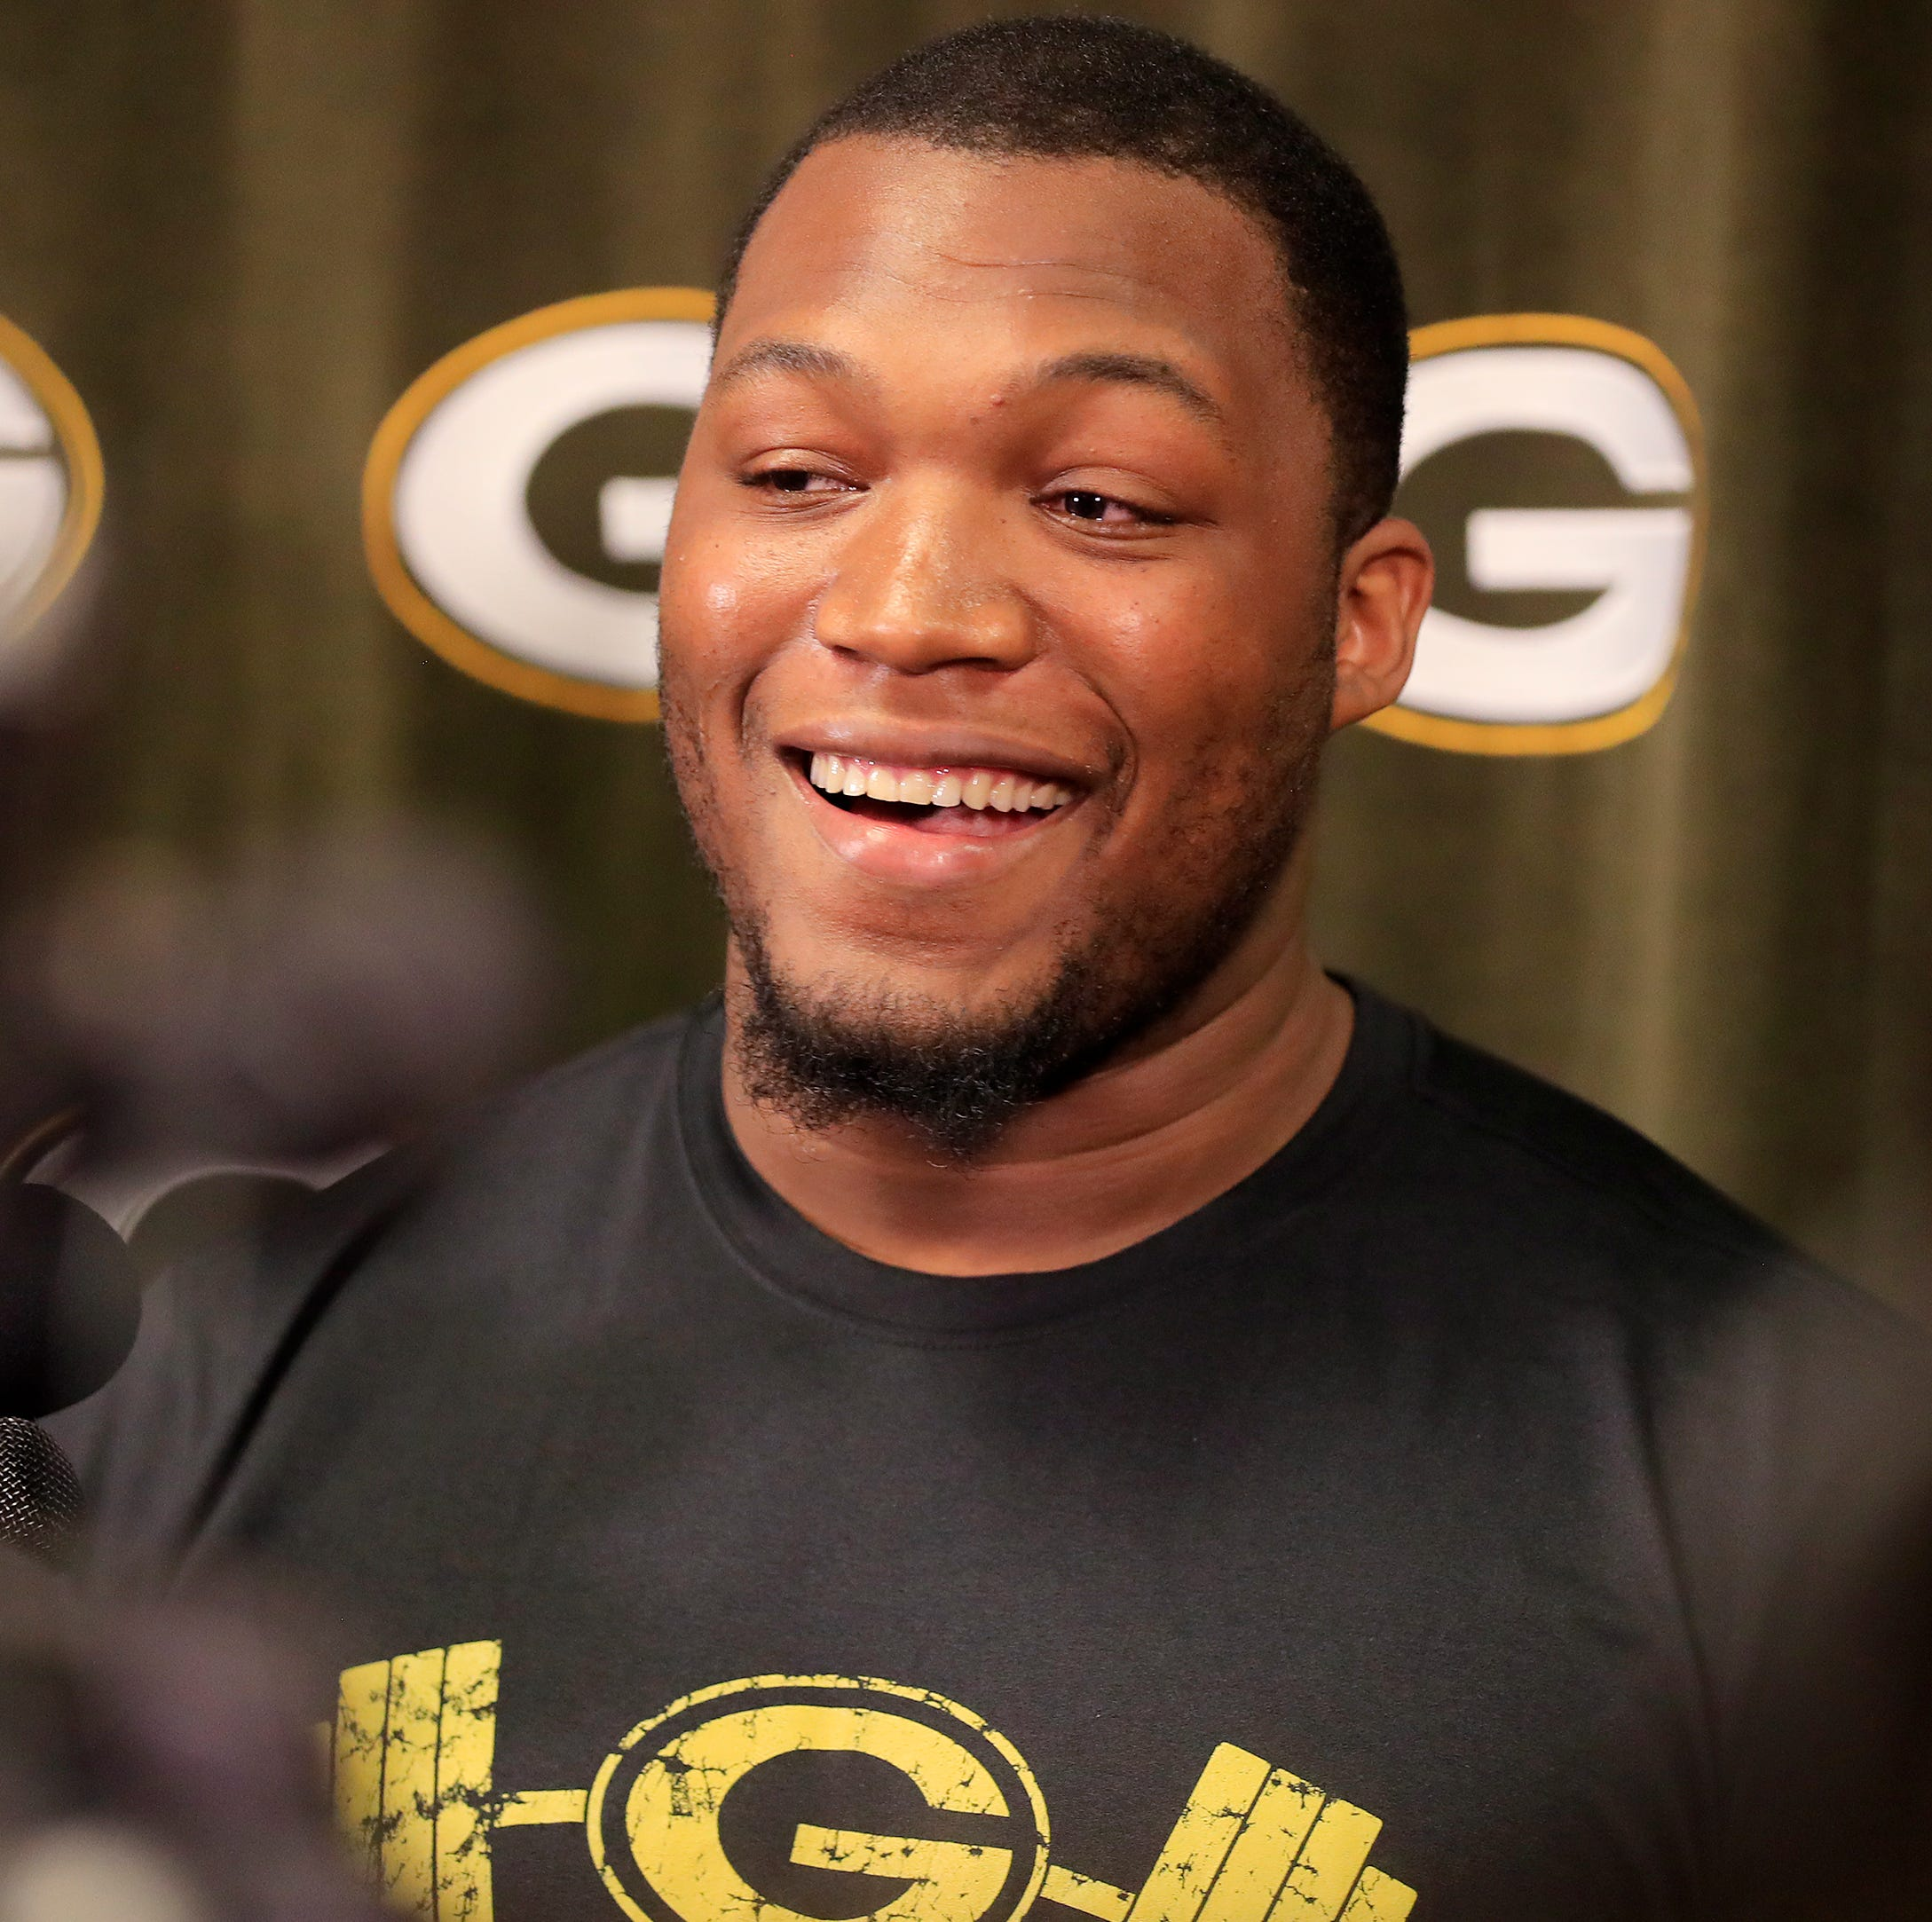 Green Bay Packers pick up Kenny Clark's fifth-year option